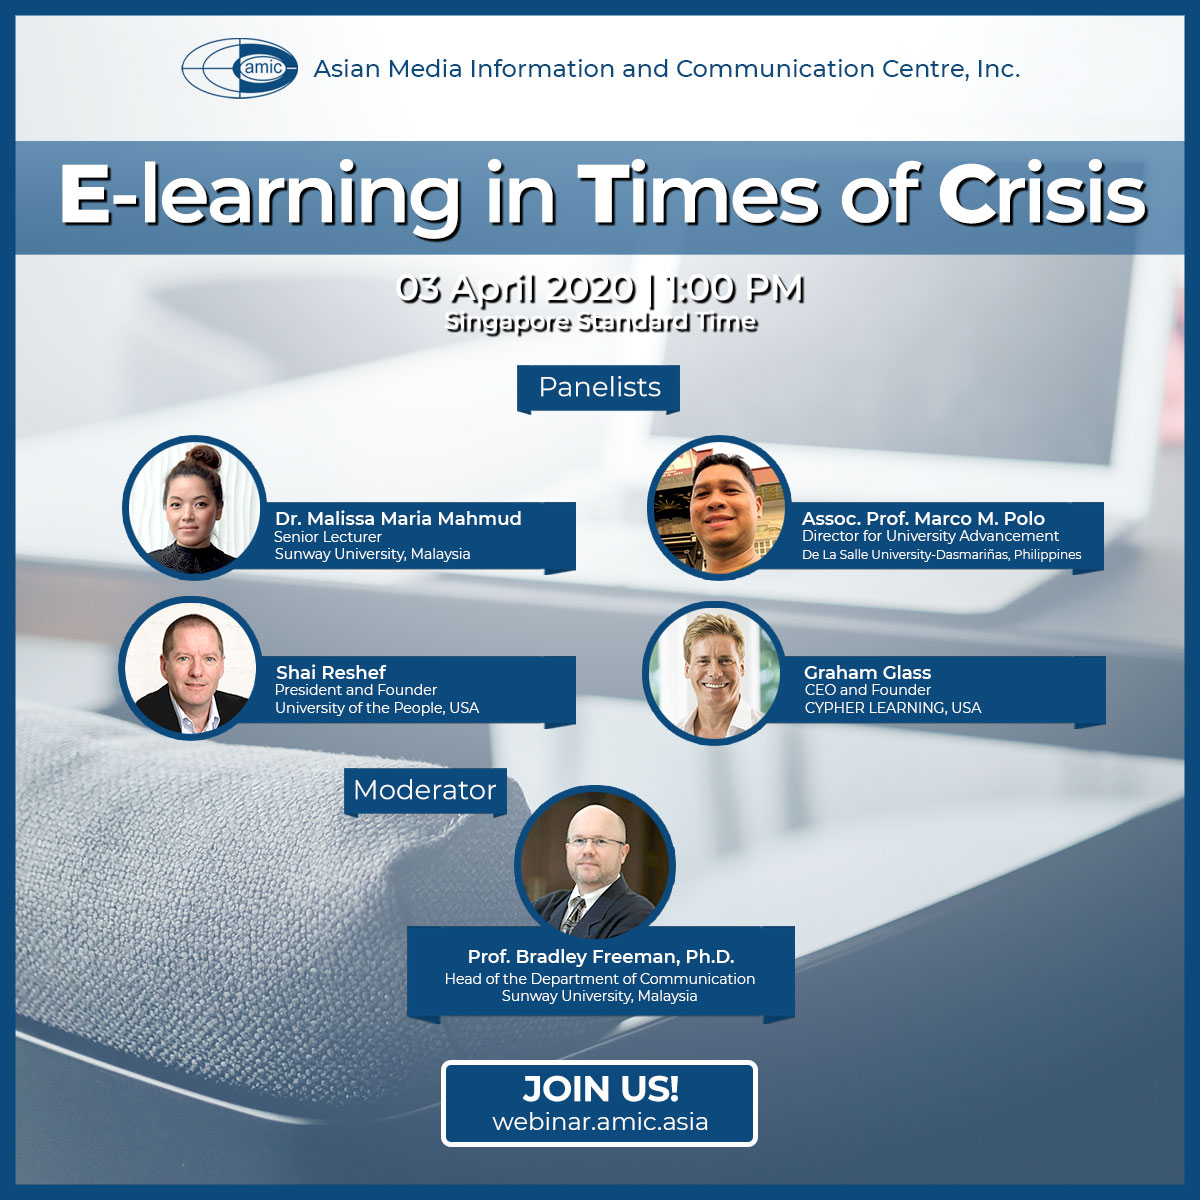 Webinar Poster: E-Learning in Times of Crisis